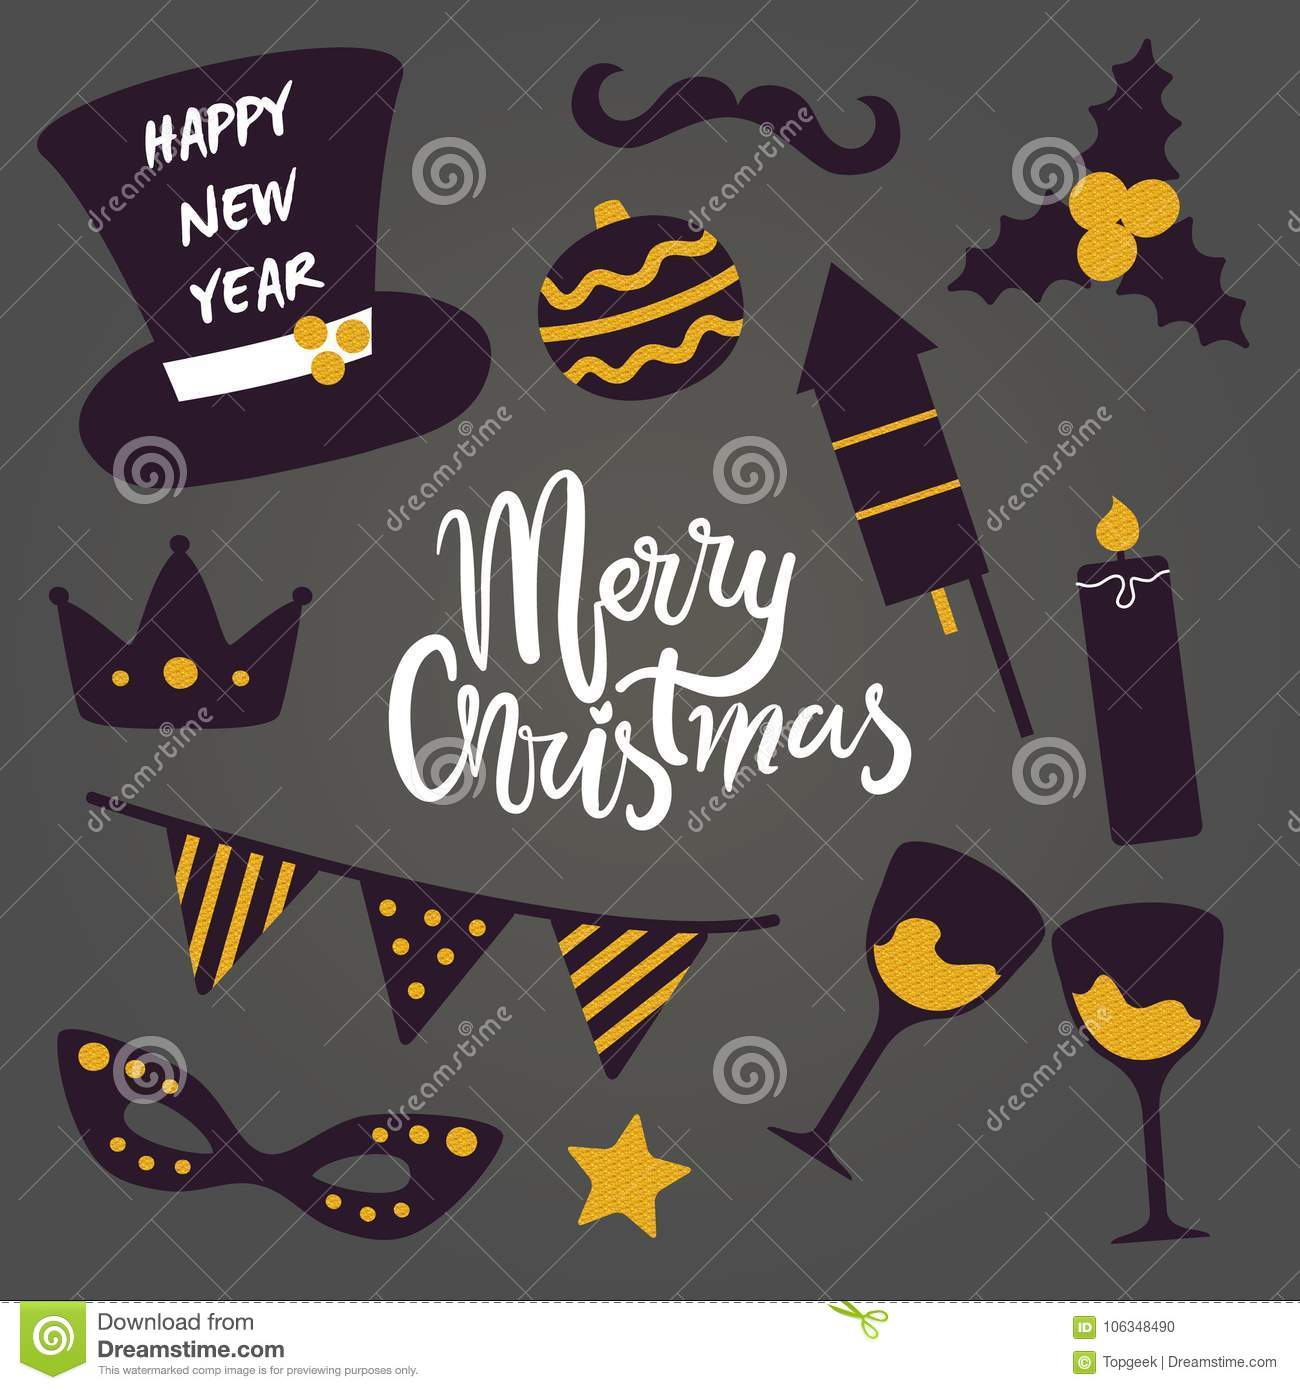 merry christmas happy new year vector pattern